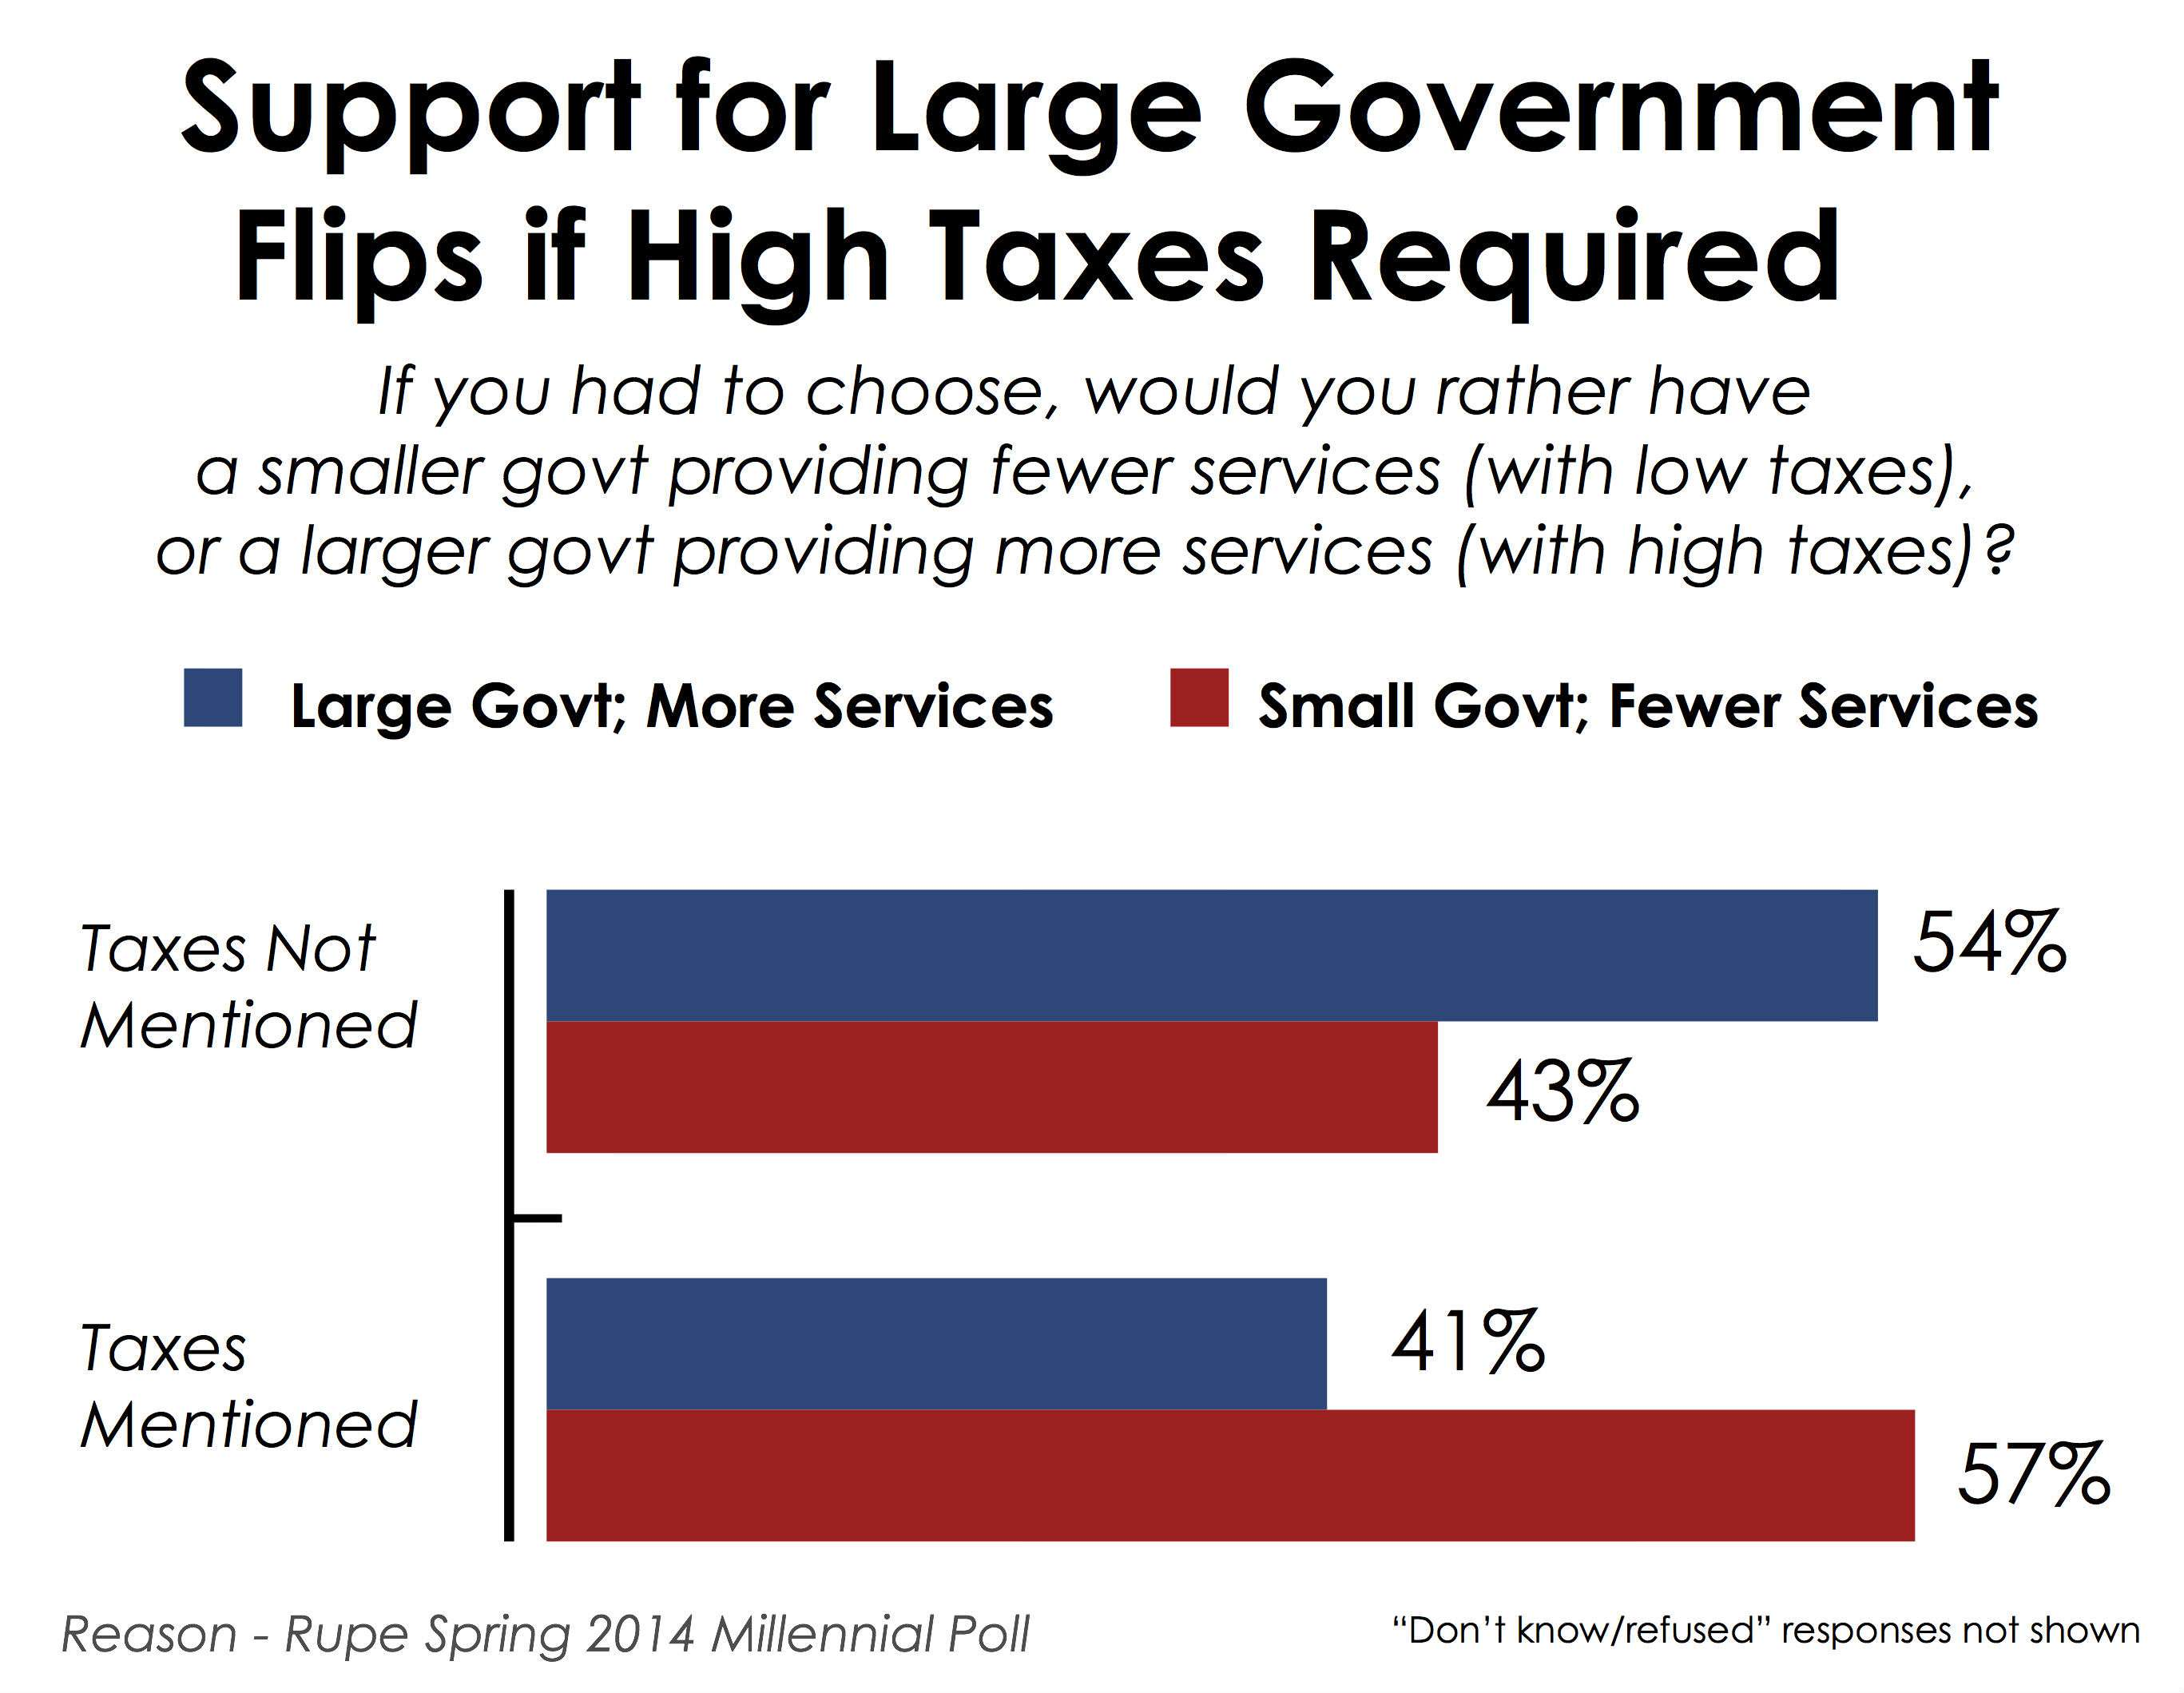 Millennials Prefer Small Government if Large Government Requires ...